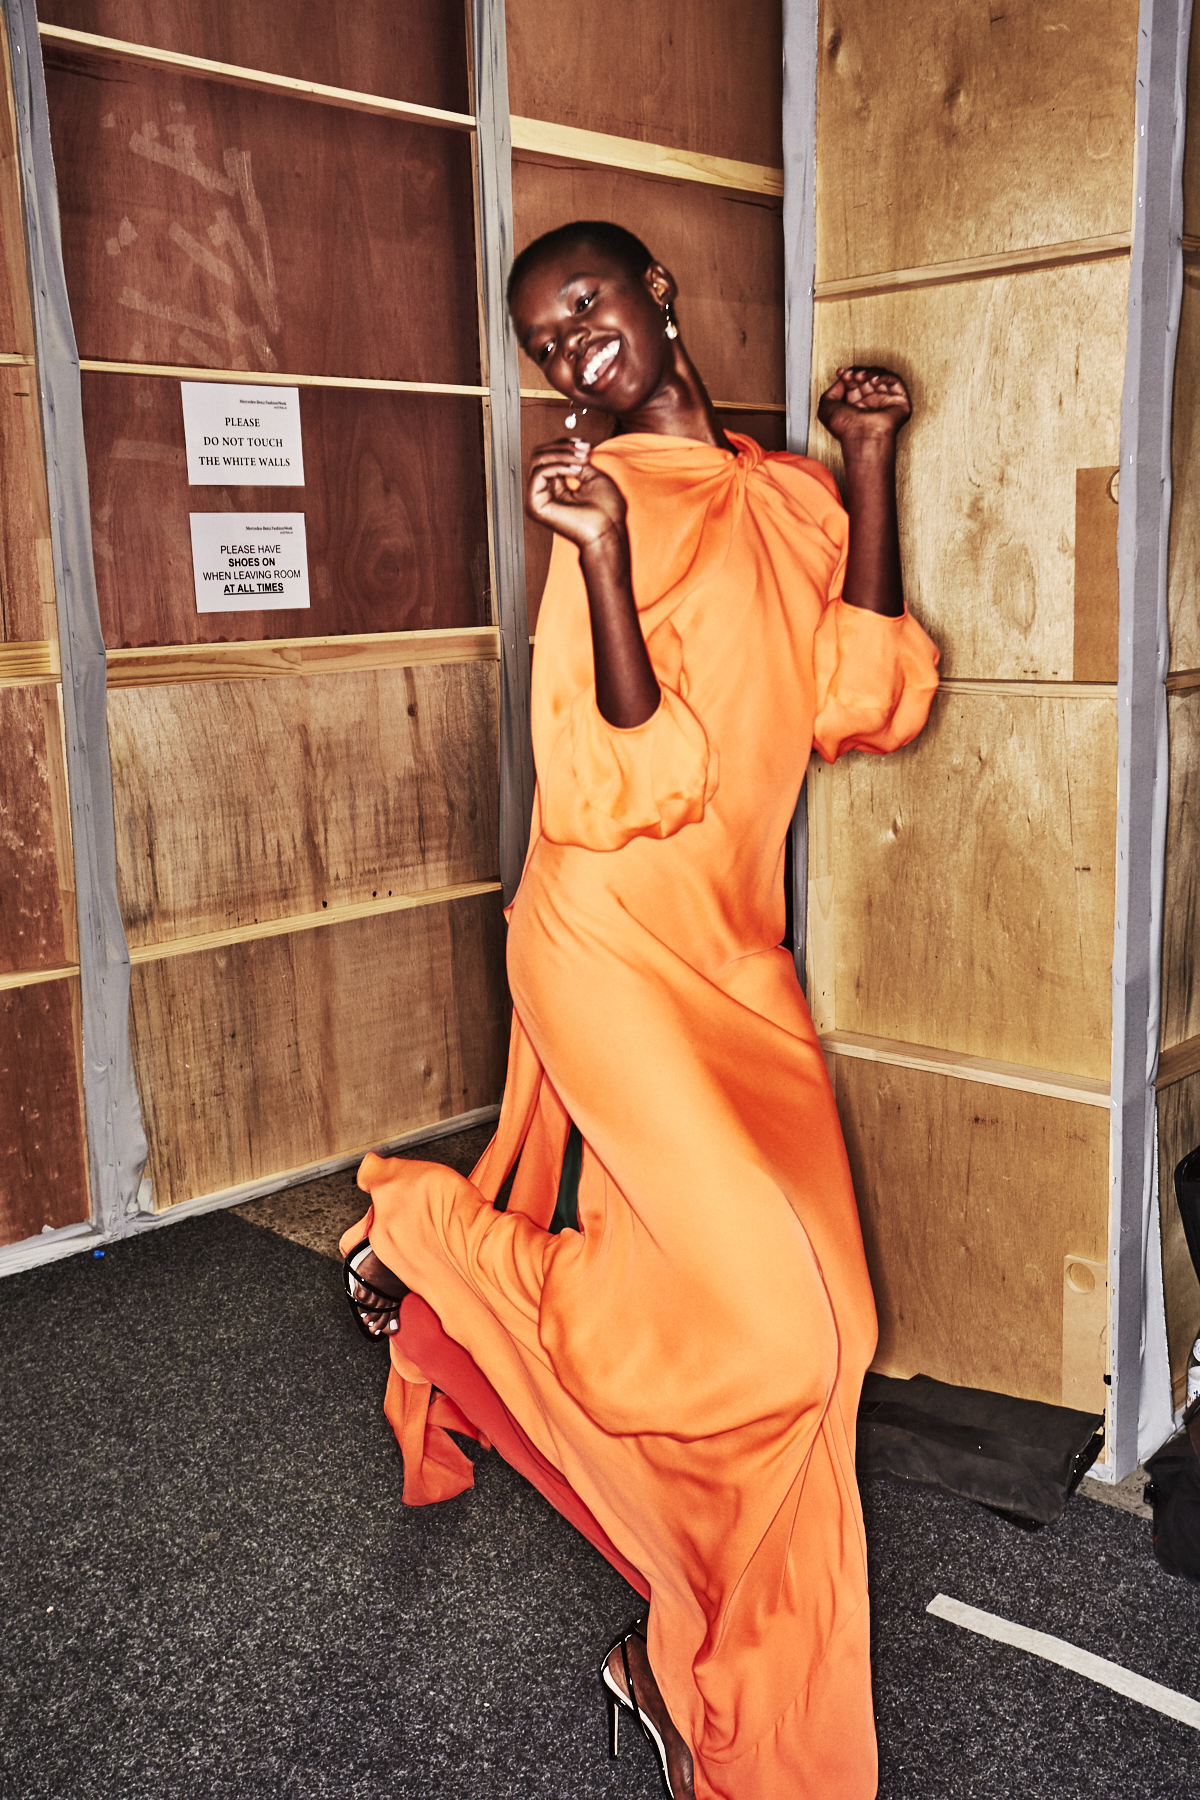 Bianca Spender Resort 2019 Fashion Show Sydney Backstage